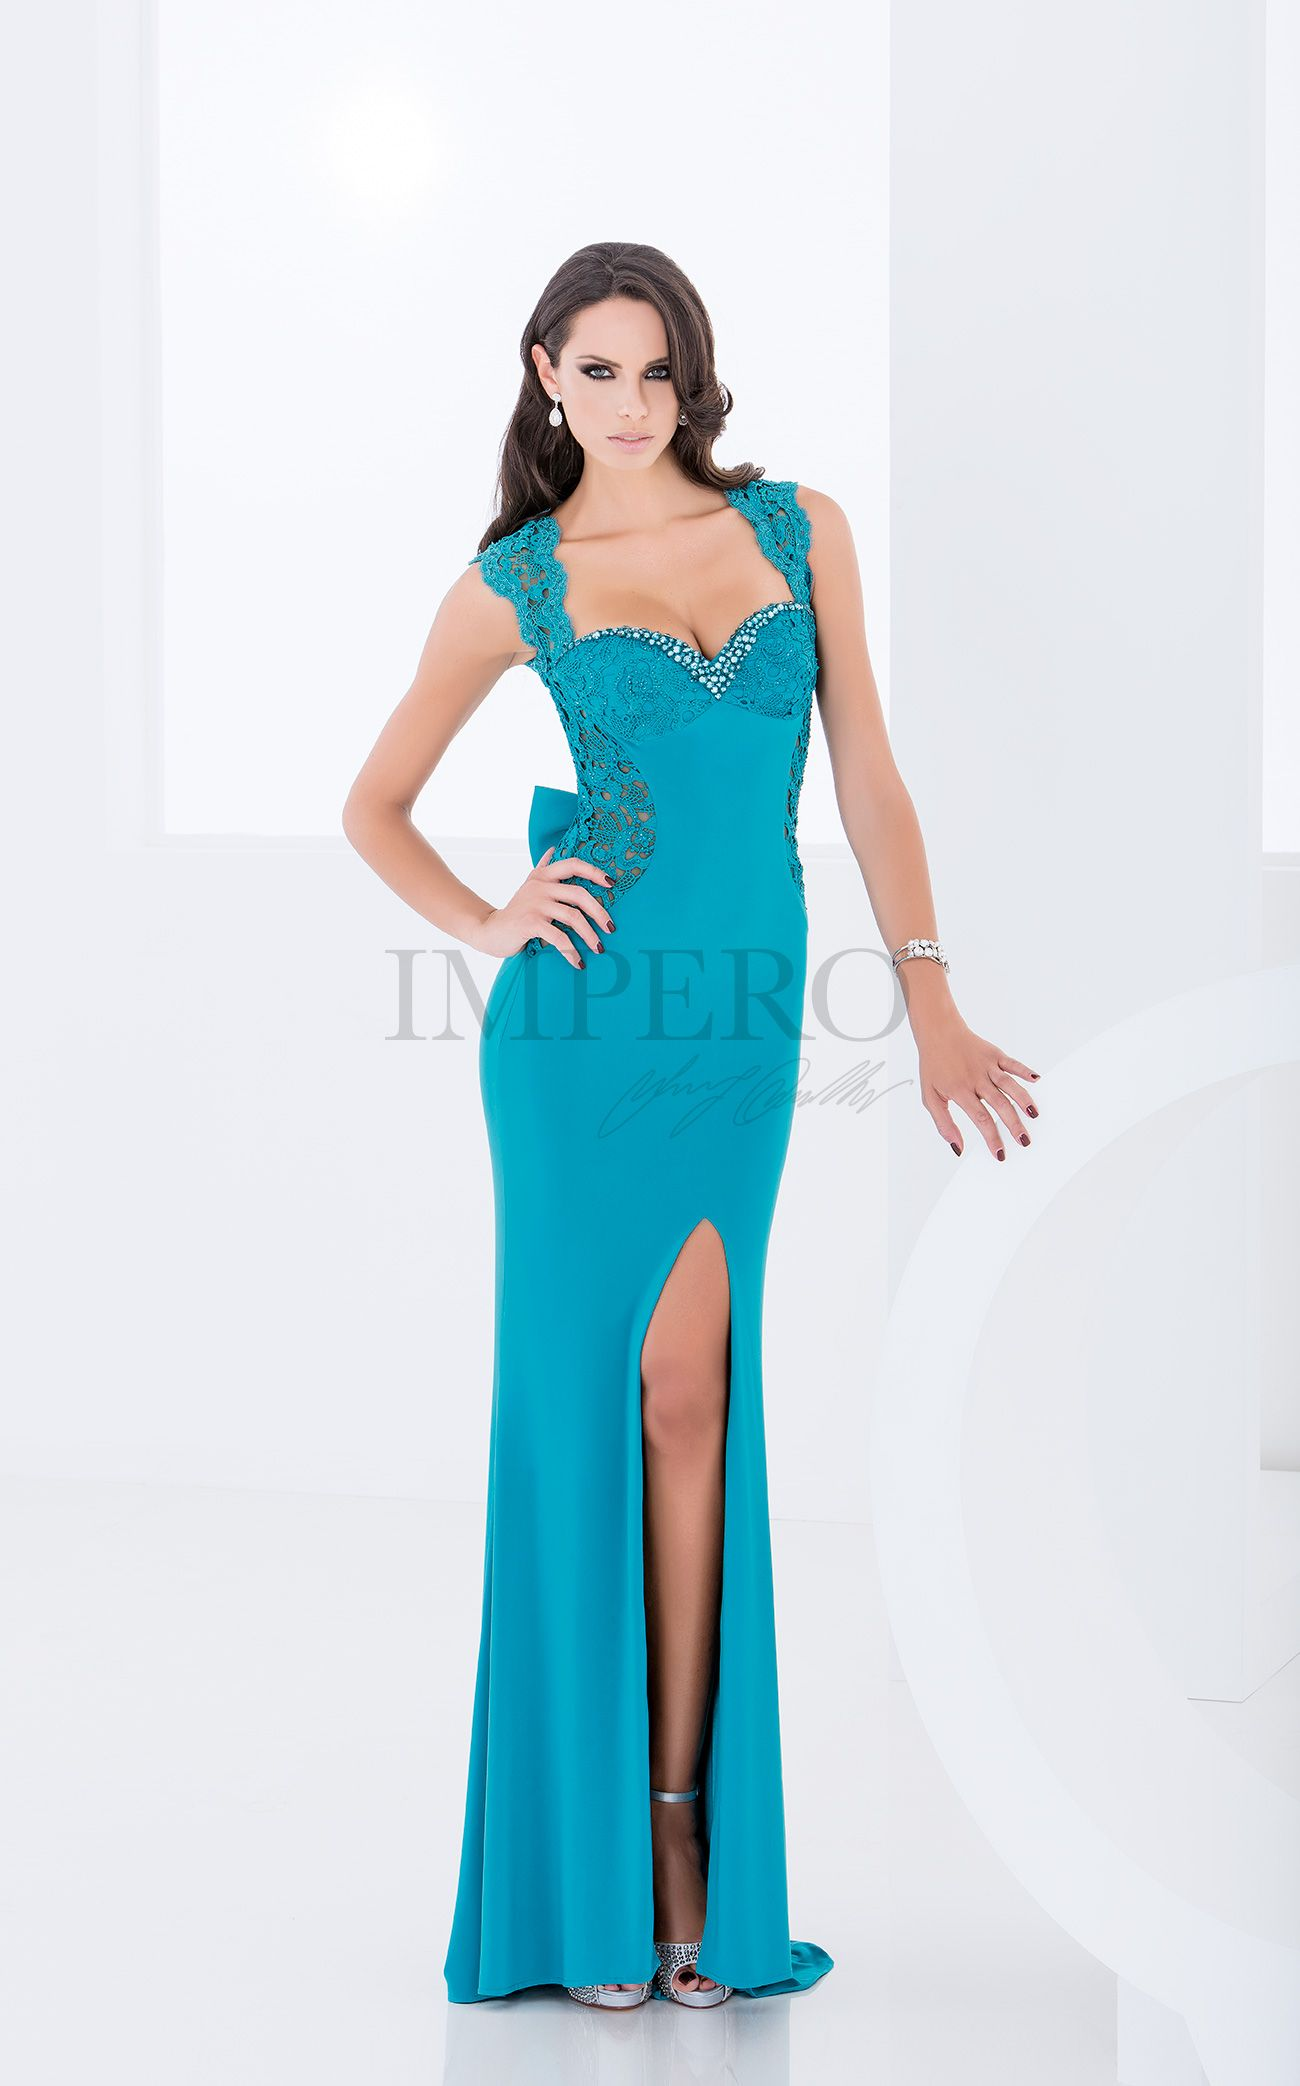 0c47535e8ba7 GN 2015-07  abiti  dress  wedding  matrimonio  cerimonia  party  event   damigelle  turchese  turquoise